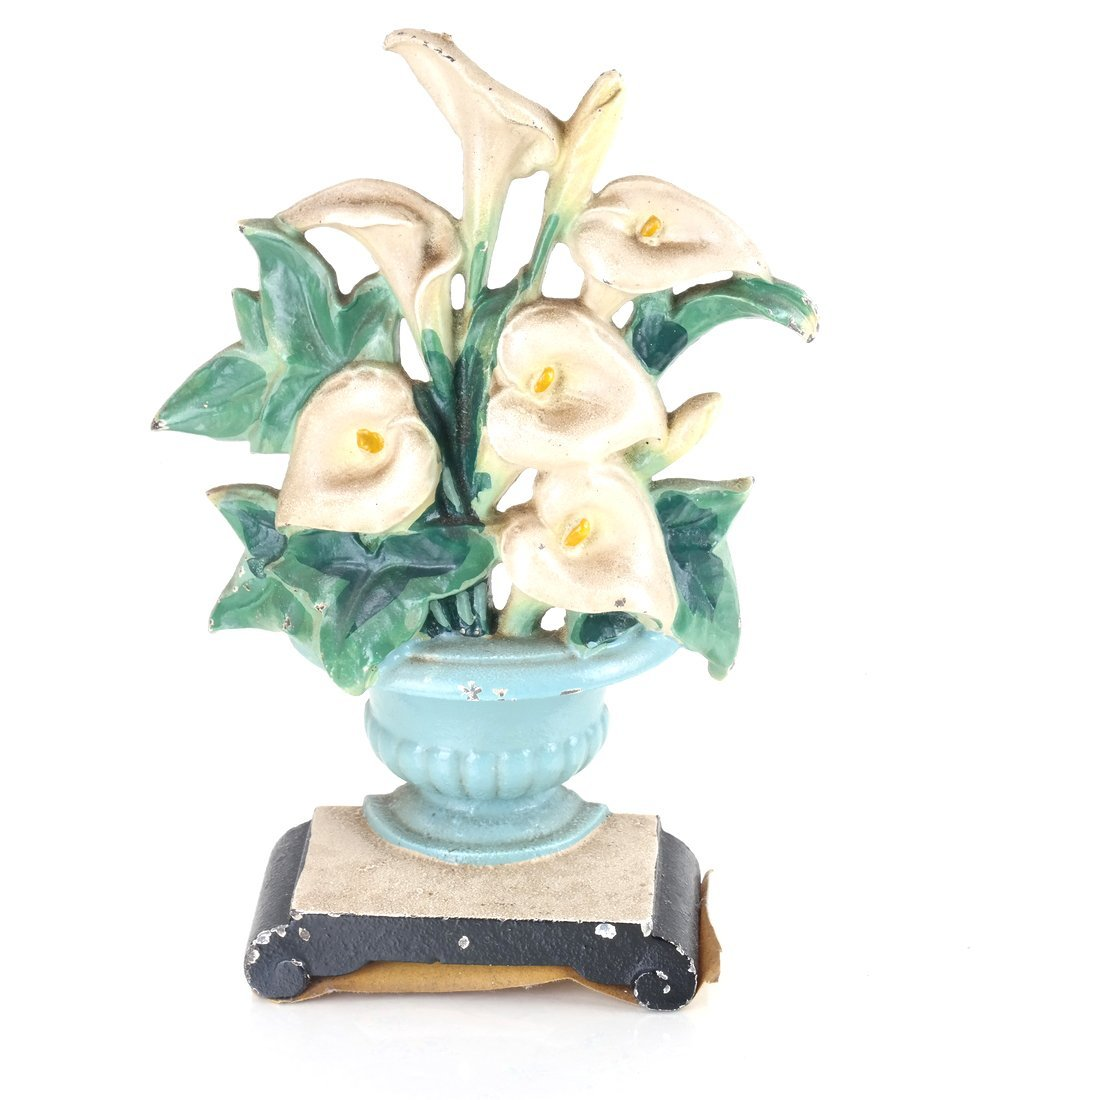 Two Identical Cast Iron Lilies in Urns Doorstops - 10